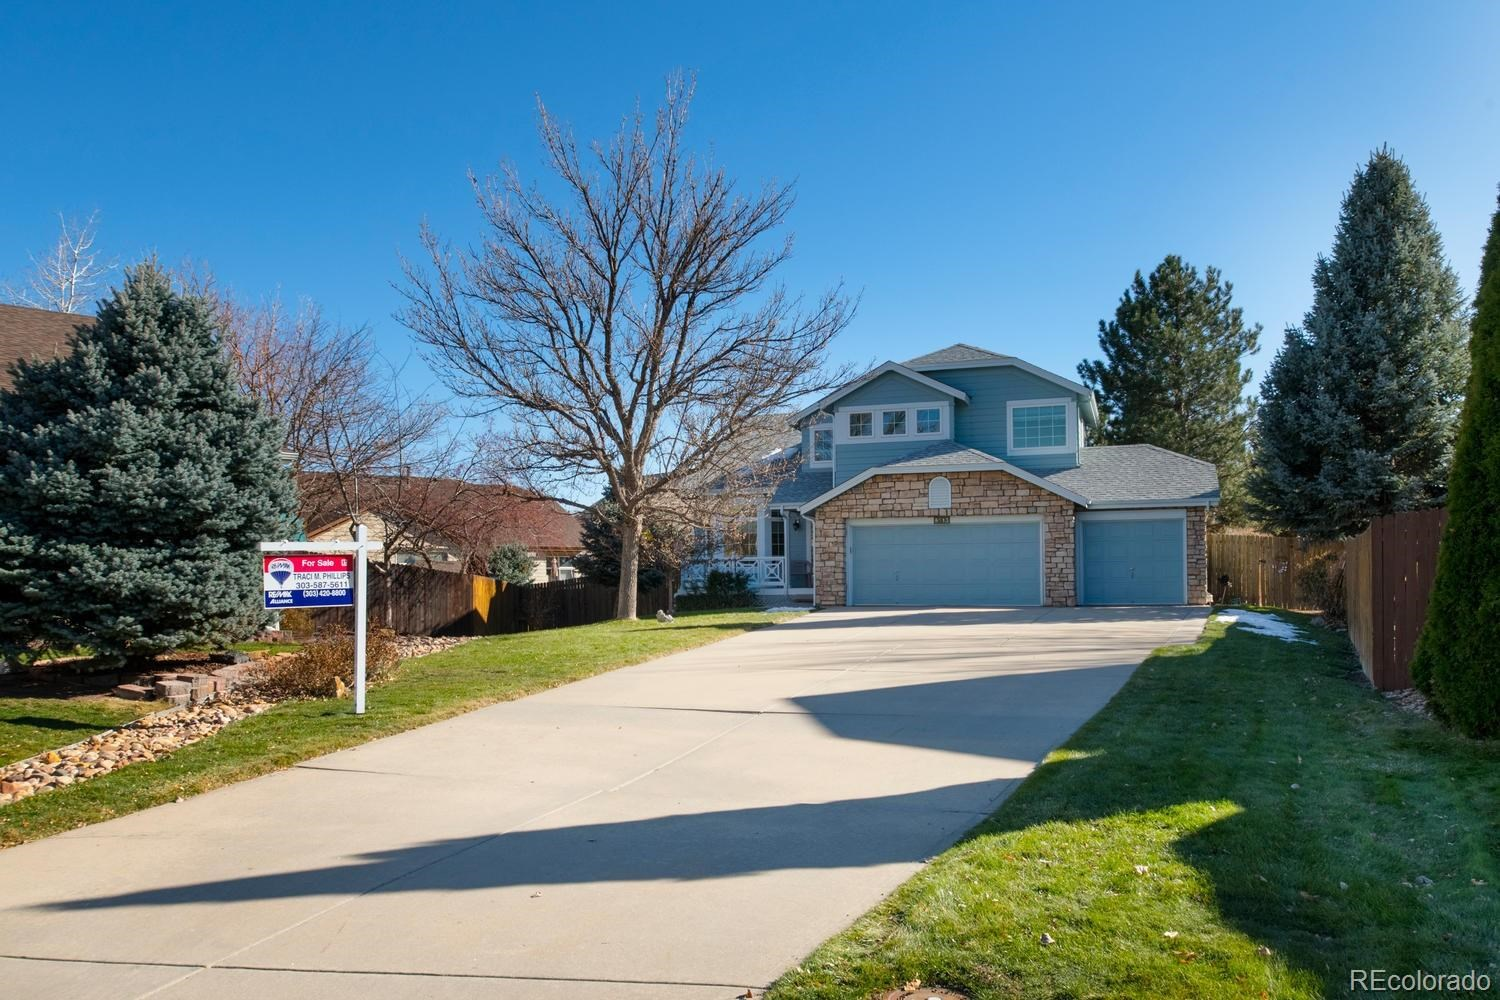 MLS# 8680648 - 3 - 8513 W 94th Avenue, Westminster, CO 80021